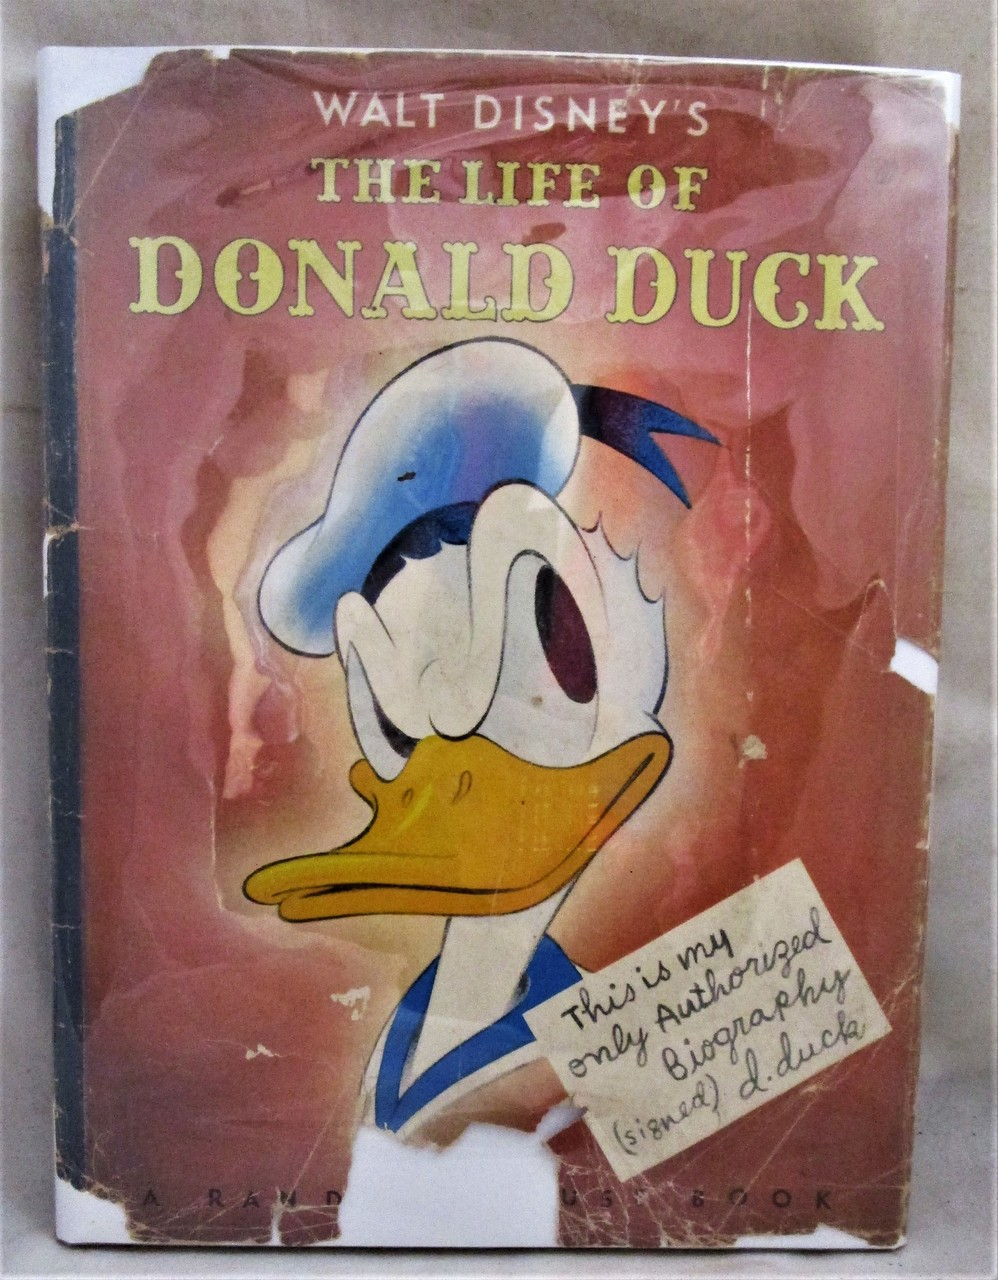 THE LIFE OF DONALD DUCK, by Walt Disney - 1941